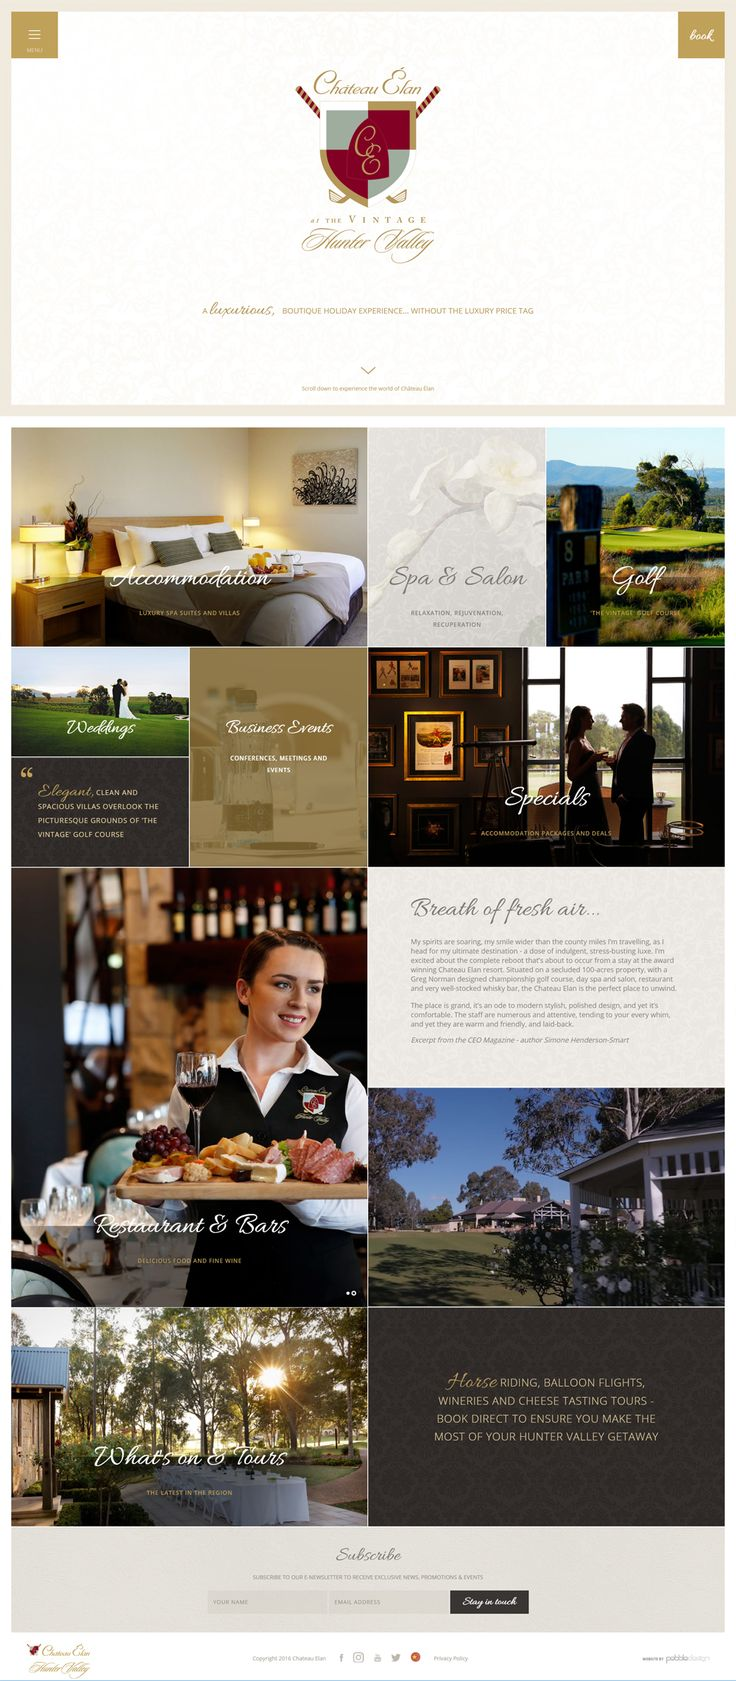 "Have a look at the brand new website we have recently sent live for Chateau Elan, Hunter Valley Australia.  ""Everything you desire is right here... boutique accommodation, an exquisite day spa, dining and bars and an 18 hole golf course""   See more - http://pebbledesign.com/our-work   Site - http://www.chateauelan.com.au/chateau-elan-homepage.html"